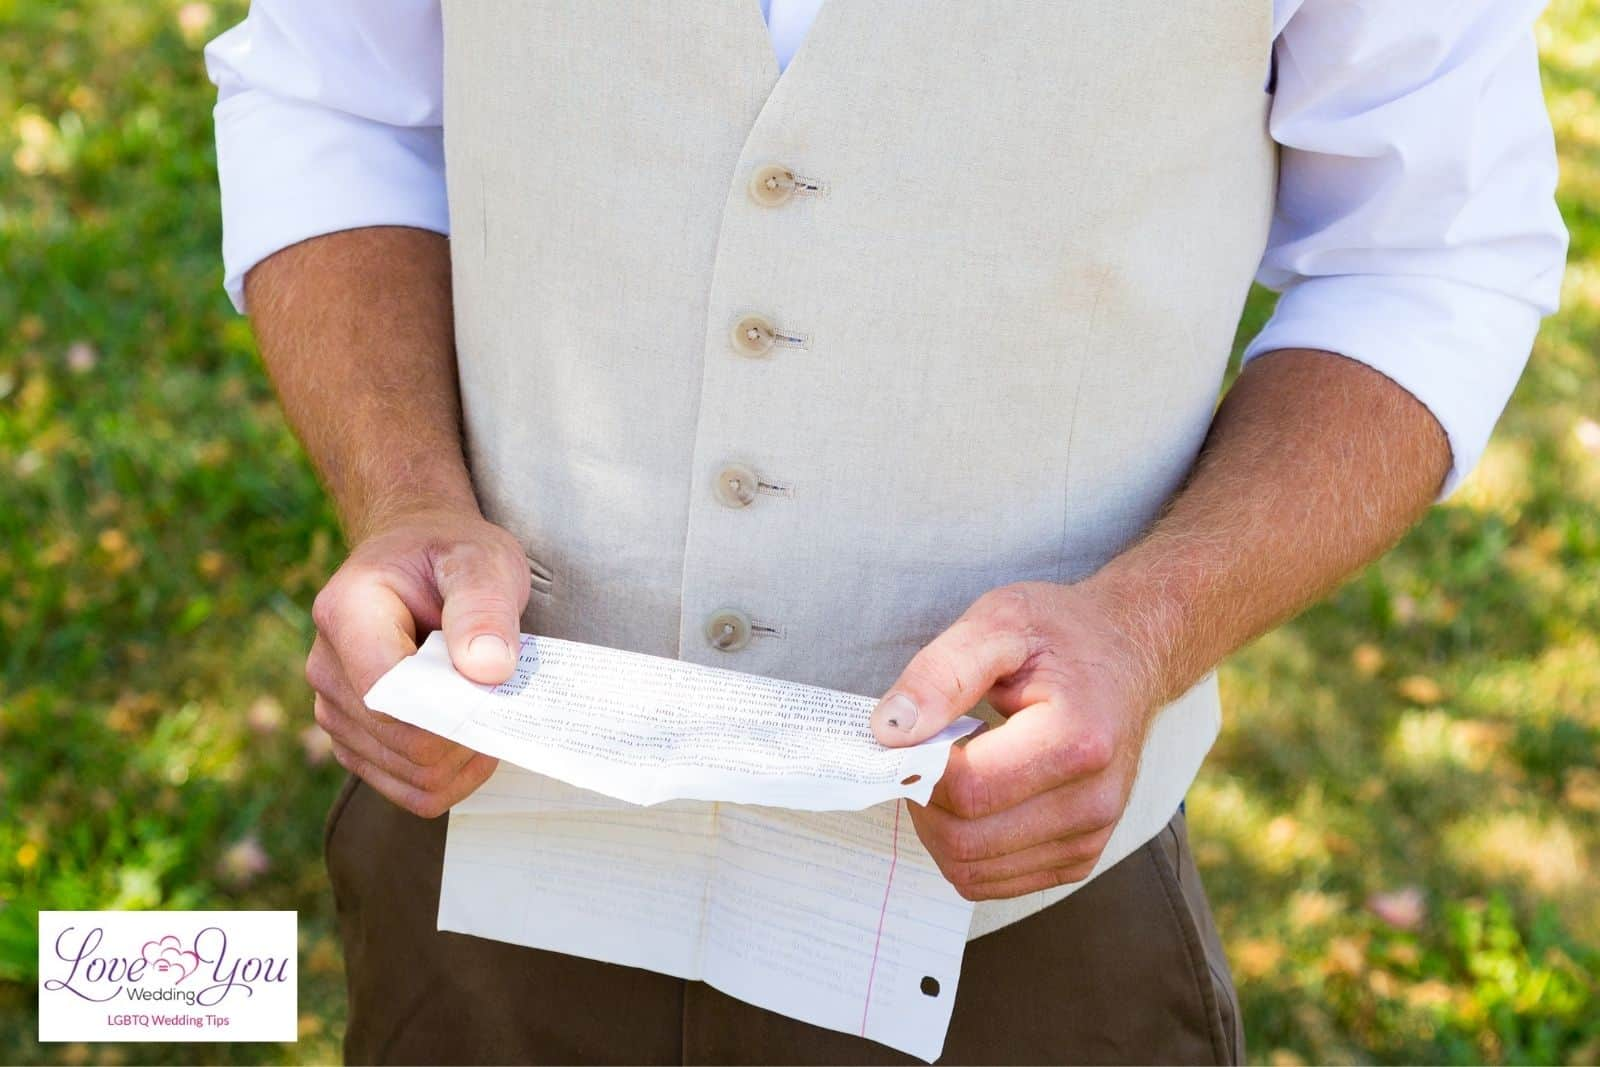 man holding a paper containing his wedding vows